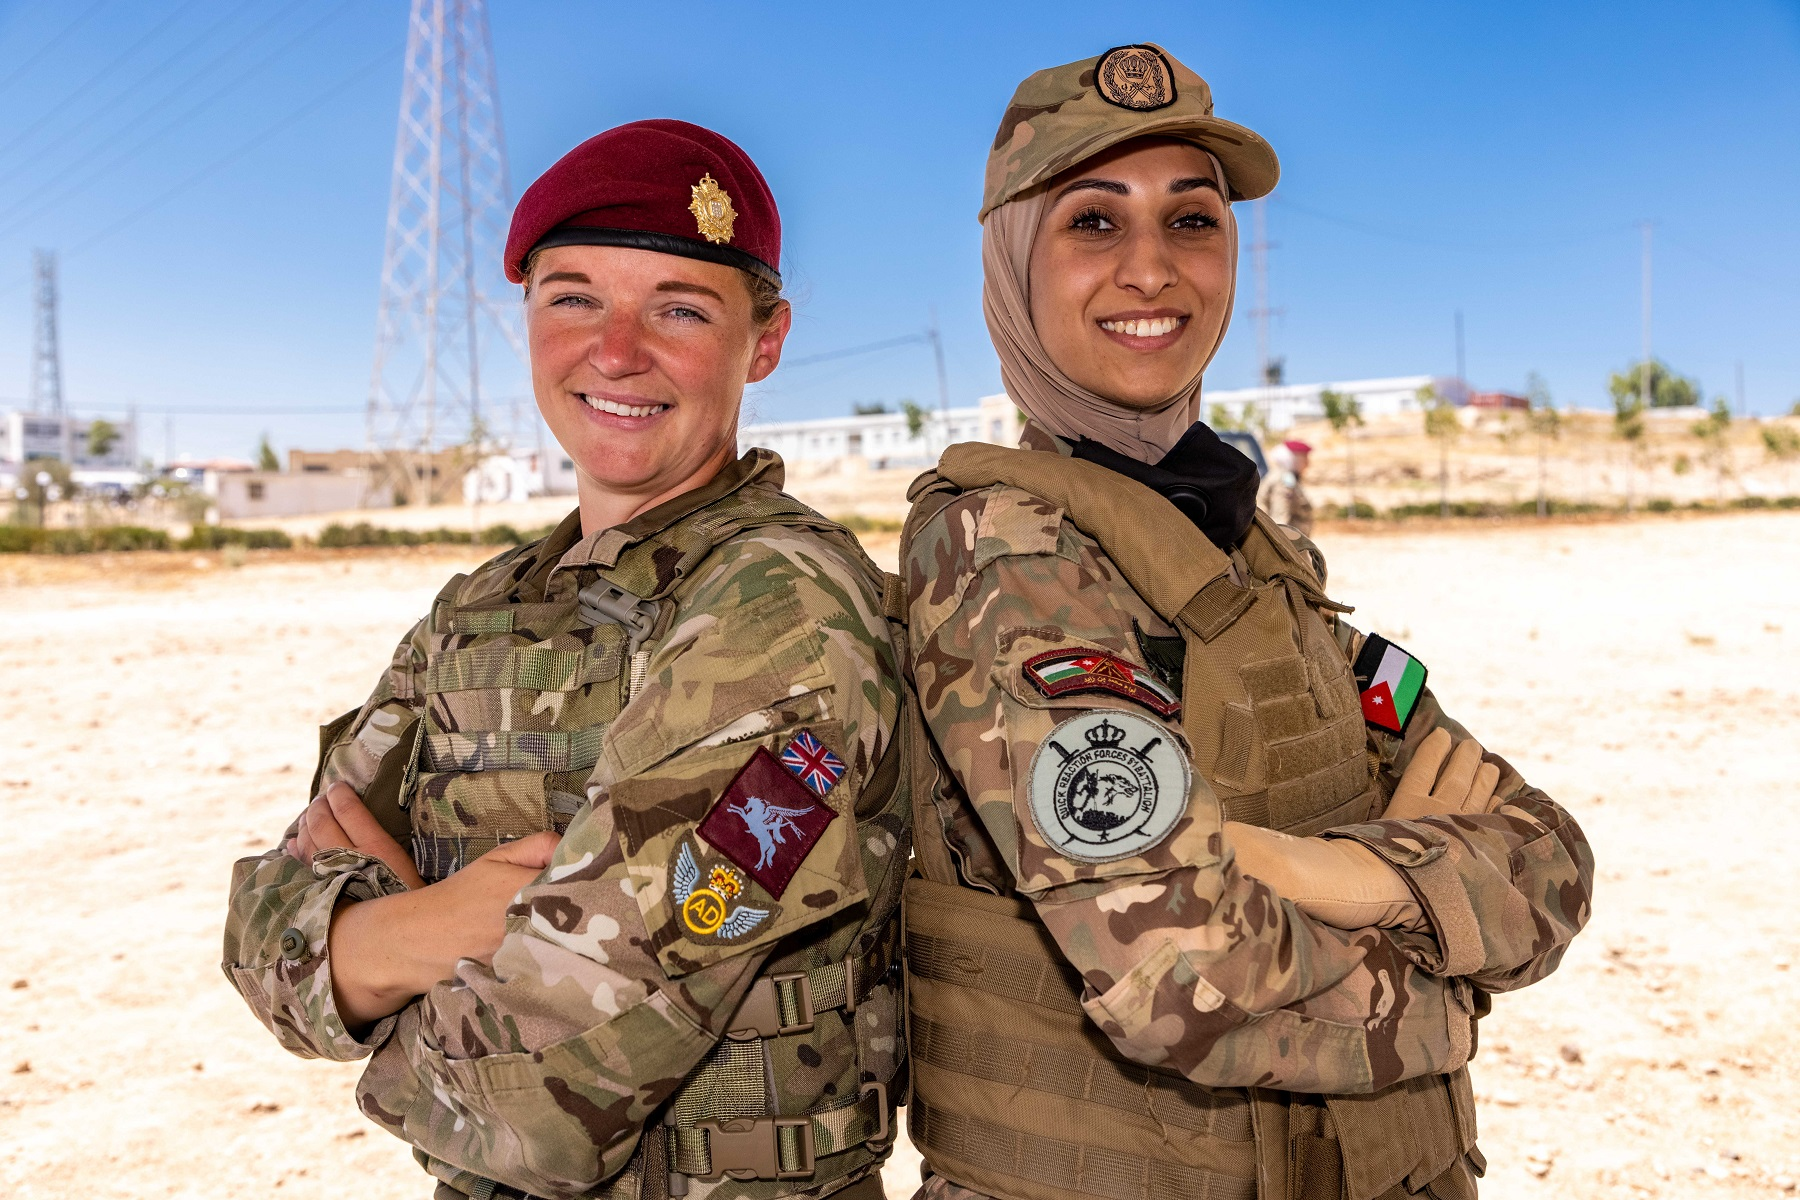 16 Air Assault Brigade Female Engagement Team conduct training with soldiers and officers from the Jordanian Army as a joint force on counter IED operations.